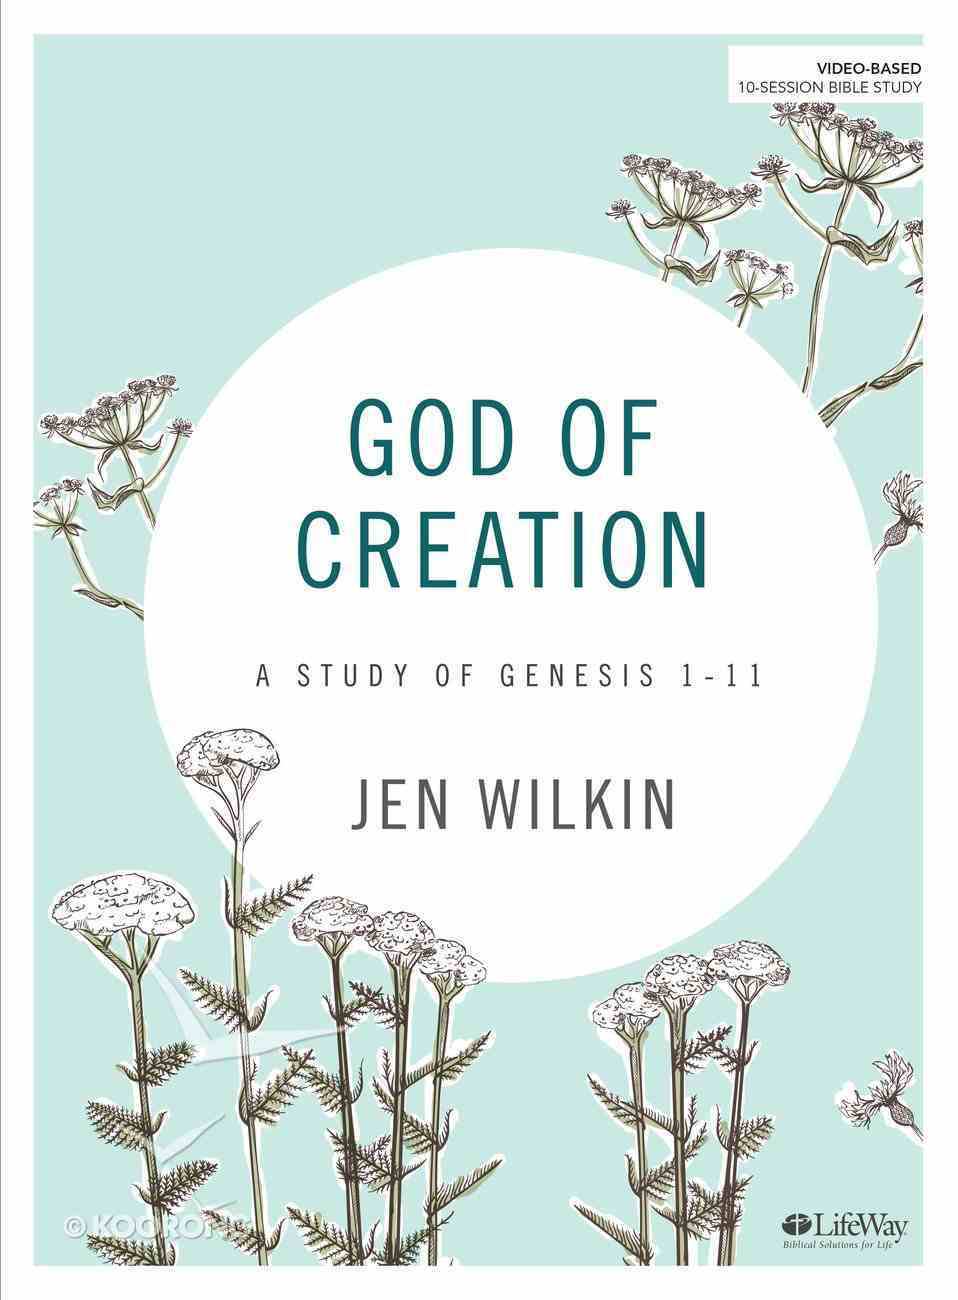 God of Creation (A Study of Genesis 1-11) (Bible Study Book) Paperback